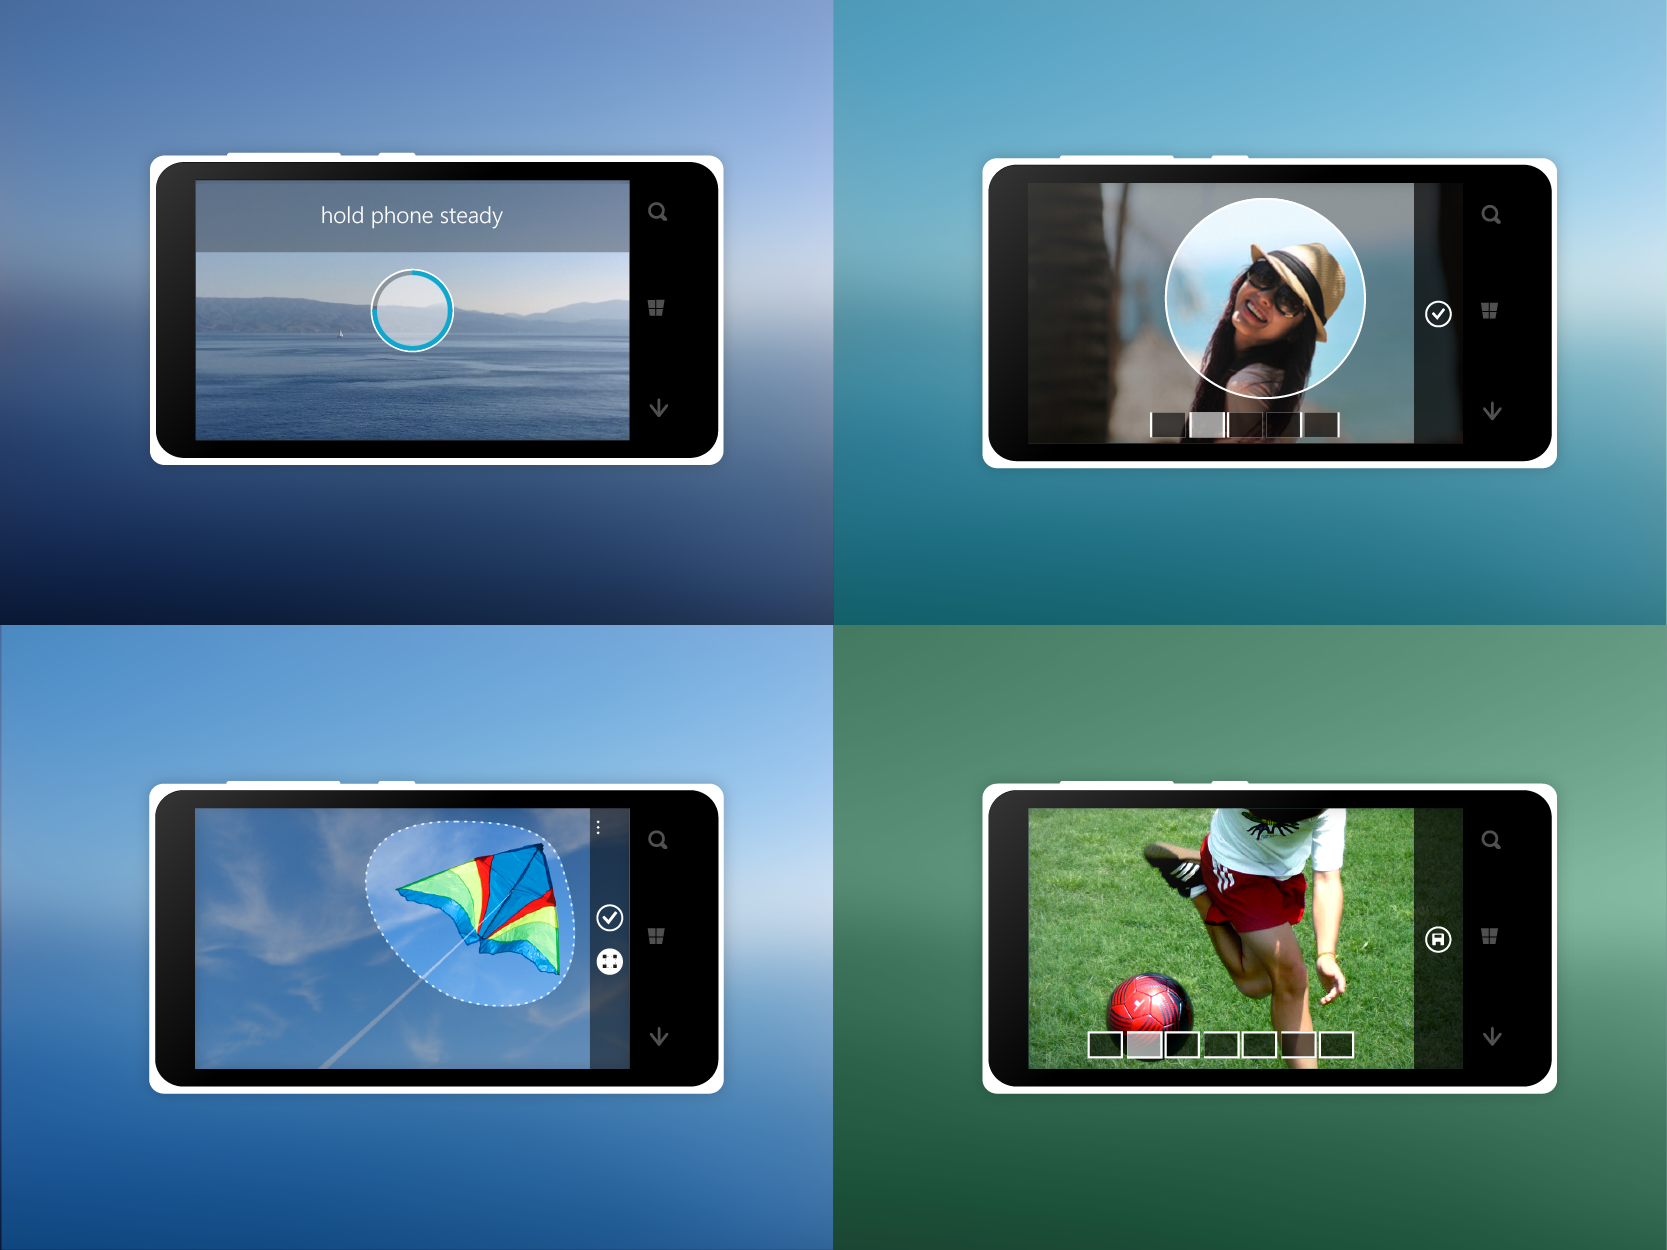 Family of apps - Panorama was one app in a family of camera apps that our team developed for Windows Phone.